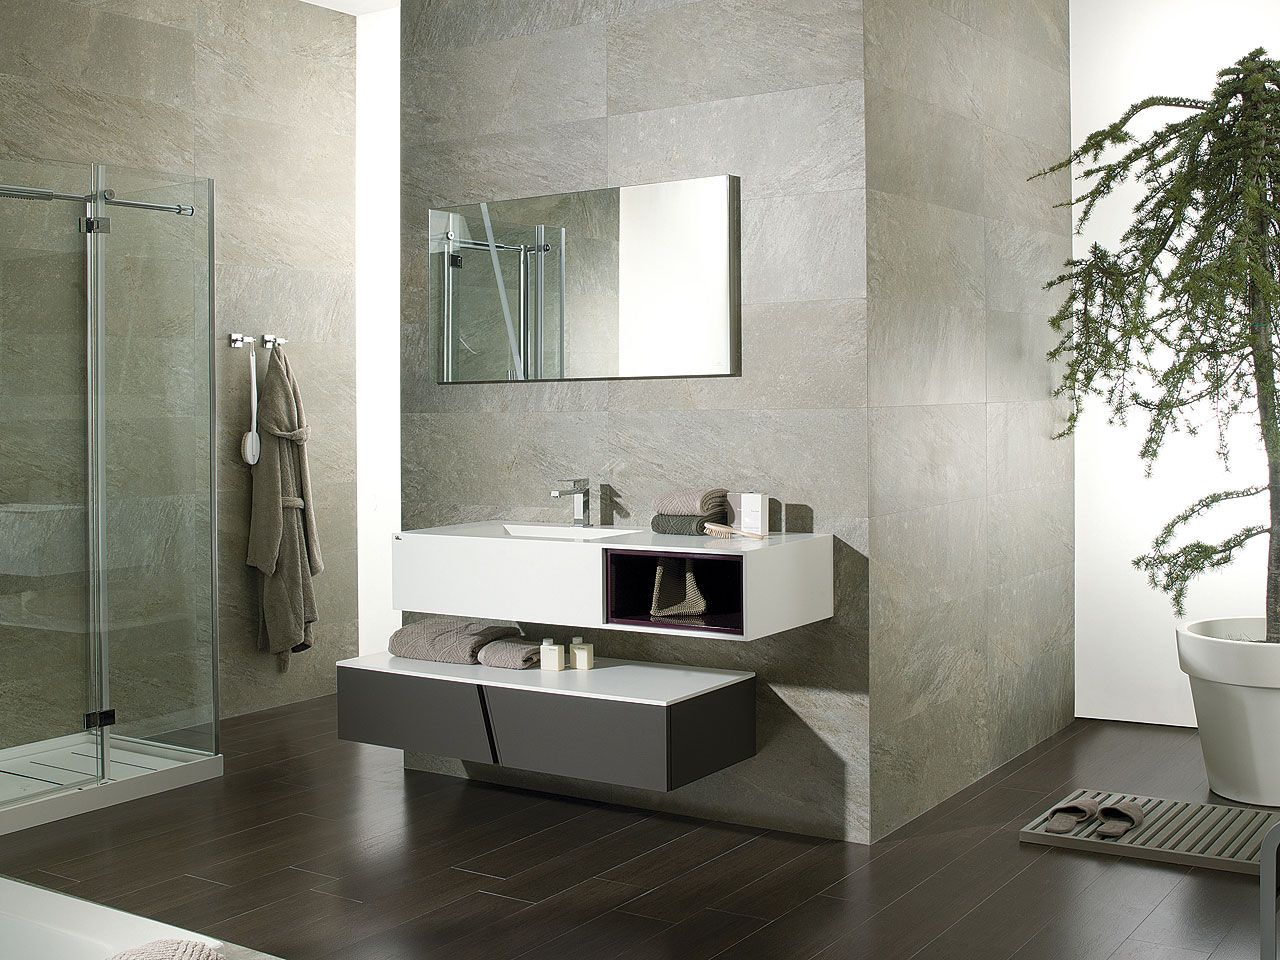 Porcelanosa bathroom sinks - The Porcelanosa Group Has Offered Bathroom Equipment Solutions For Over 25 Years Nader Colors